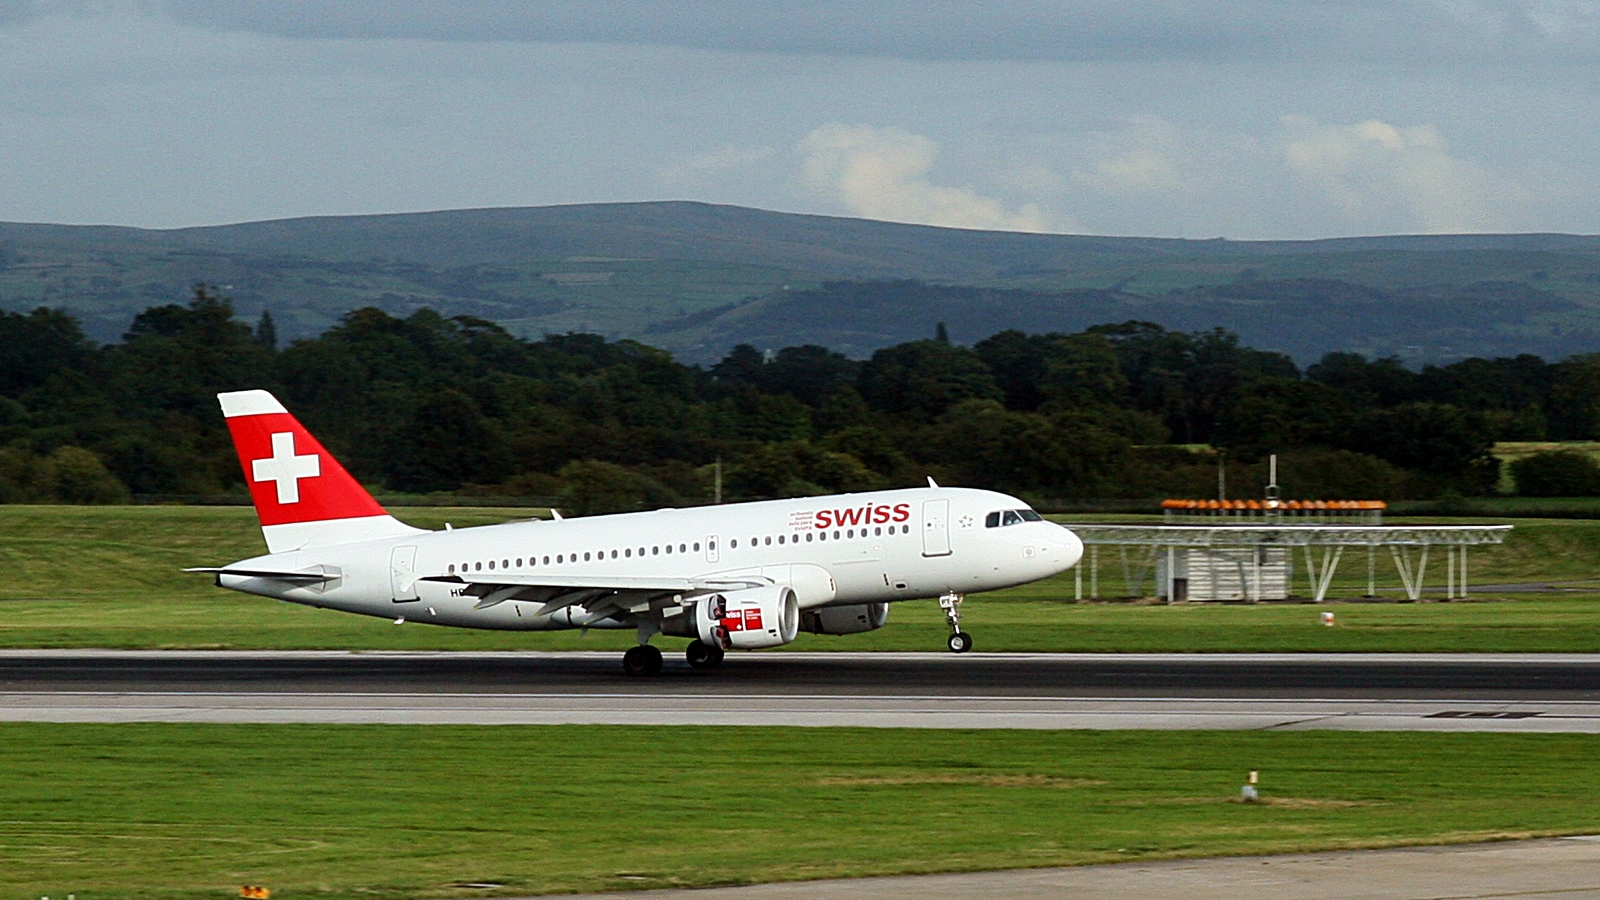 Swiss - Airbus A 319 - Manchester